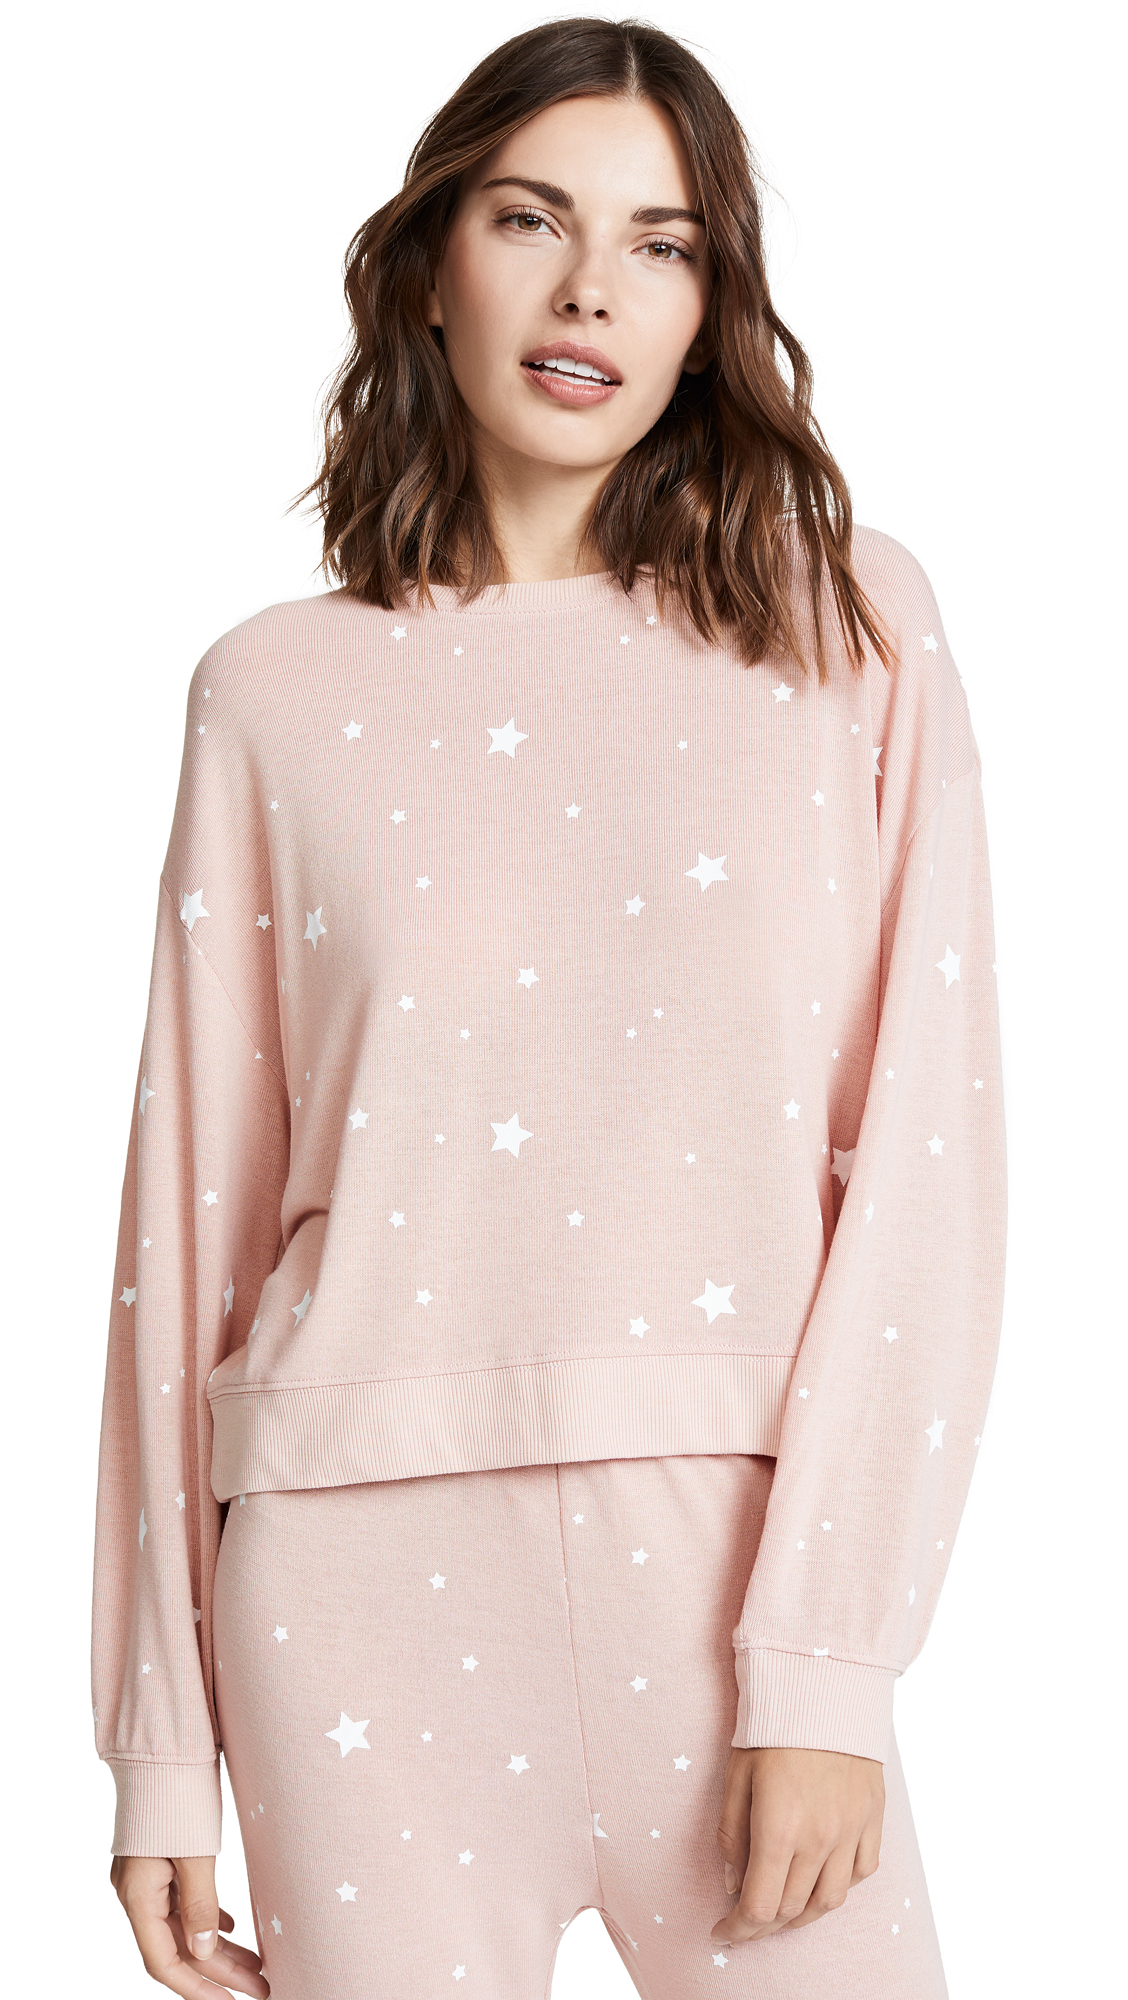 Z SUPPLY Star Print Pull Over in Silver Peony